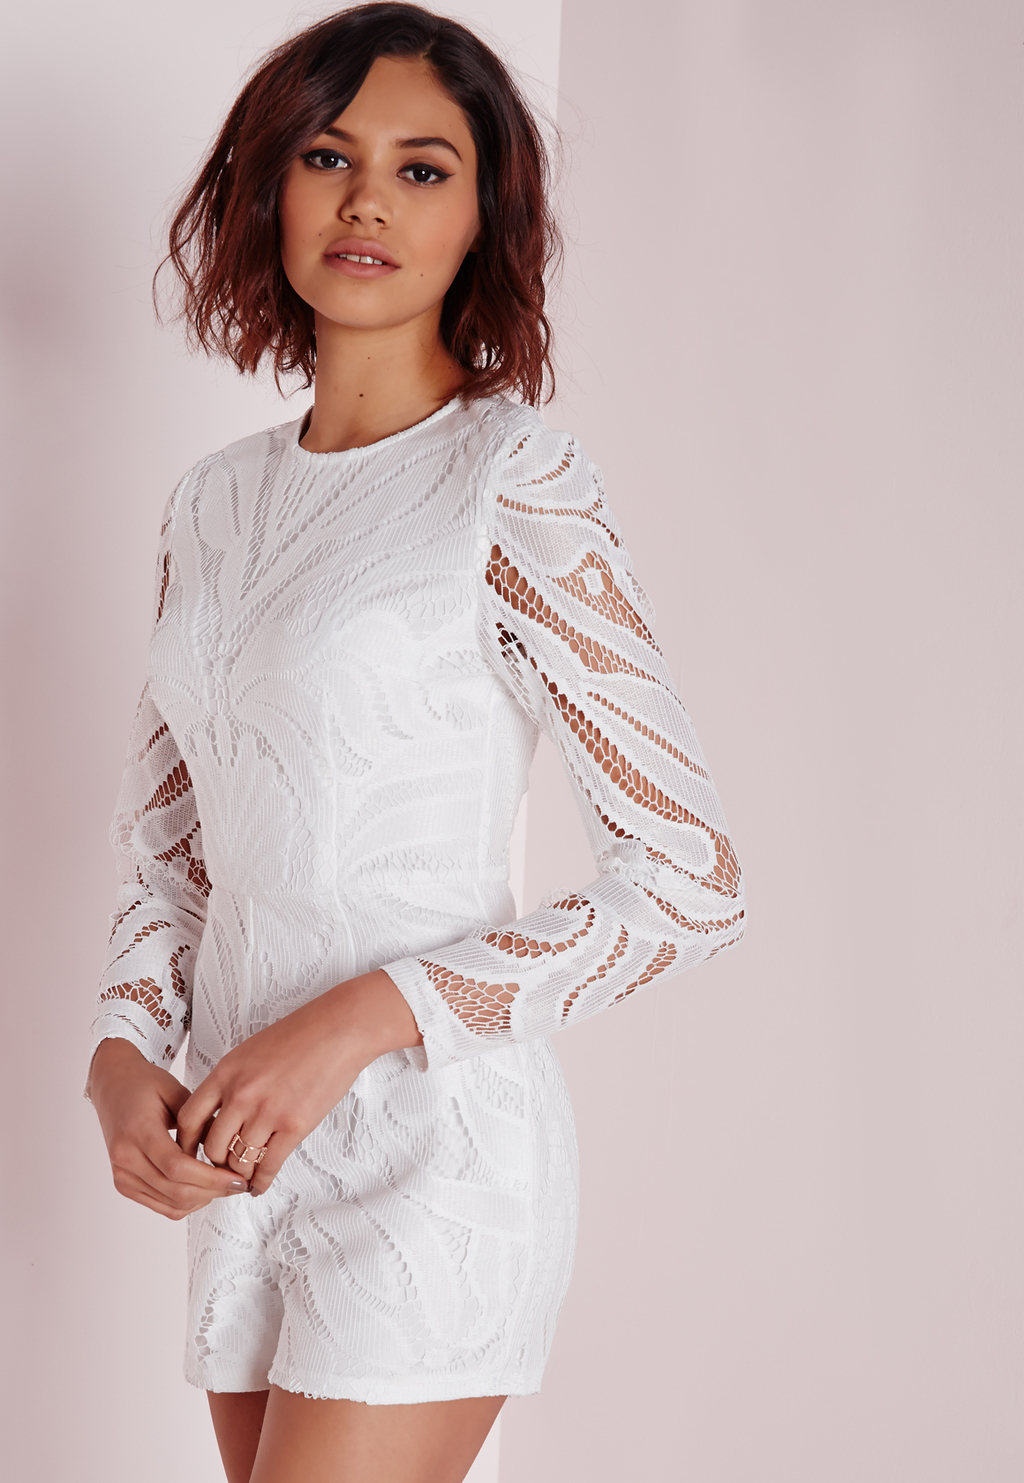 Long Sleeve Lace Playsuit White, White - fit: tailored/fitted; length: short shorts; predominant colour: white; occasions: evening; fibres: polyester/polyamide - 100%; neckline: crew; sleeve length: long sleeve; sleeve style: standard; texture group: lace; style: playsuit; pattern type: fabric; pattern: patterned/print; embellishment: lace; season: a/w 2015; wardrobe: event; embellishment location: bust